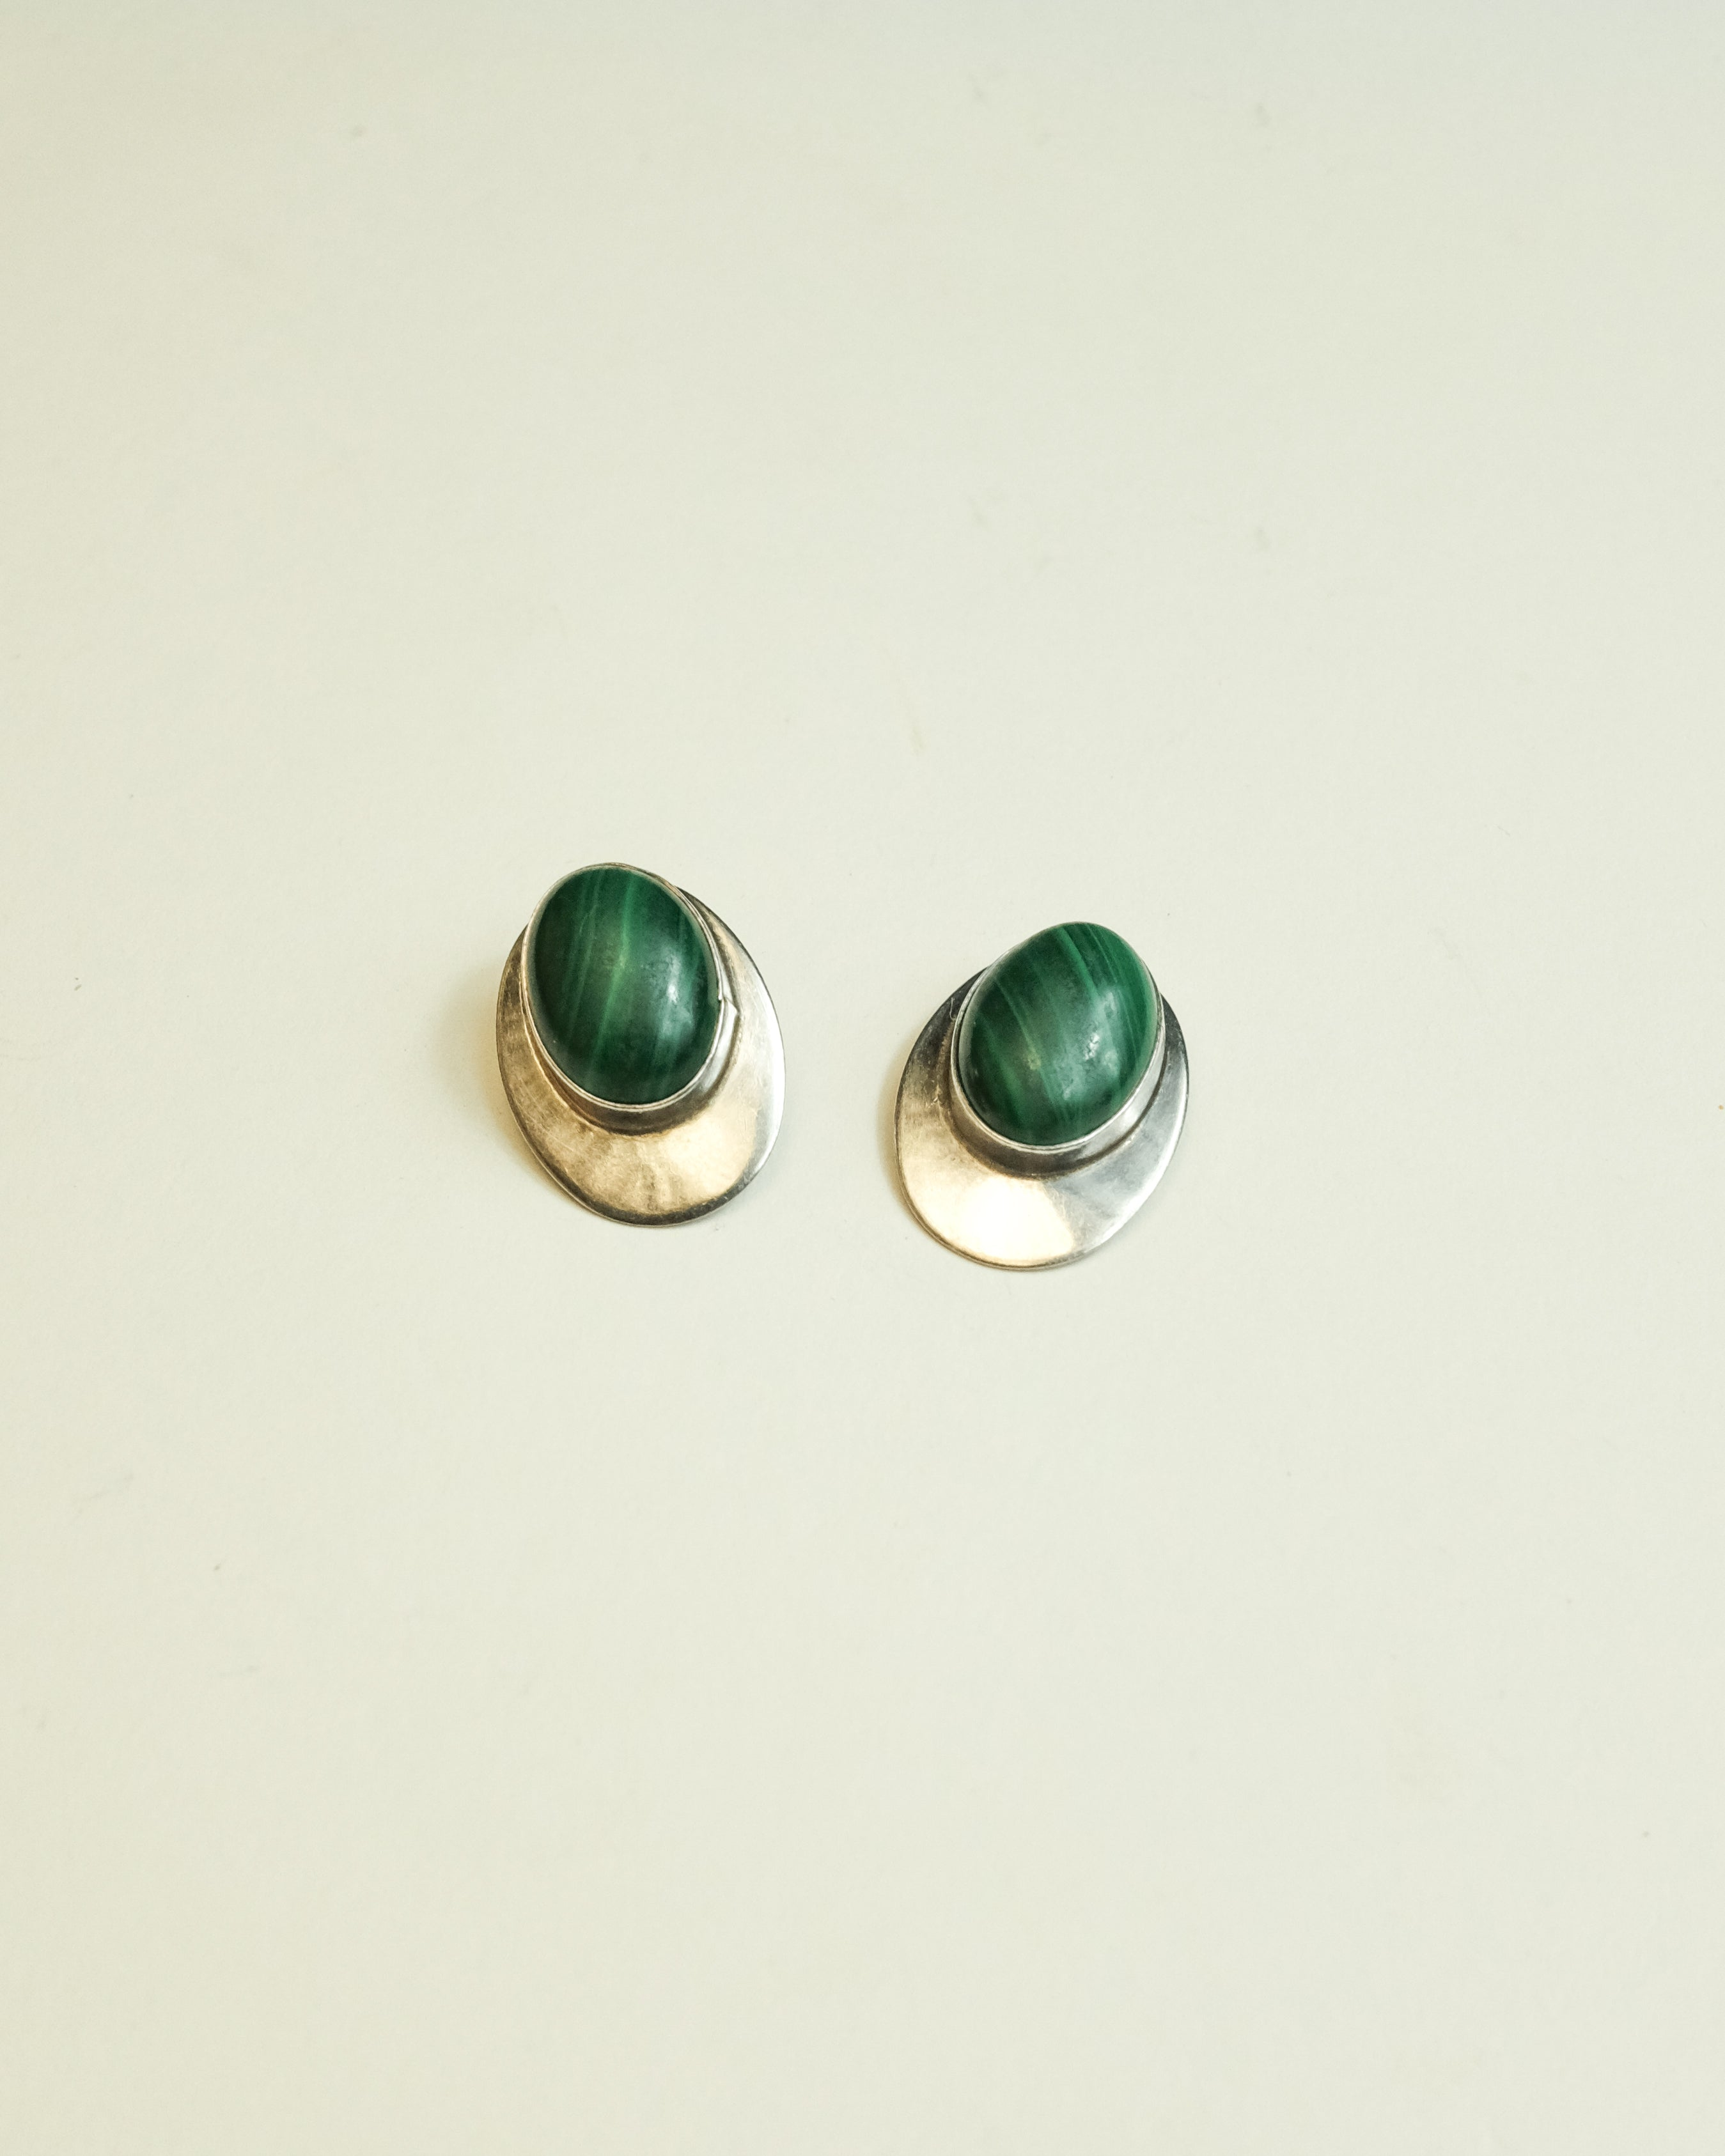 VINTAGE STERLING SILVER WITH MALACHITE CABOCHON BULLET CLUTCH EARRINGS